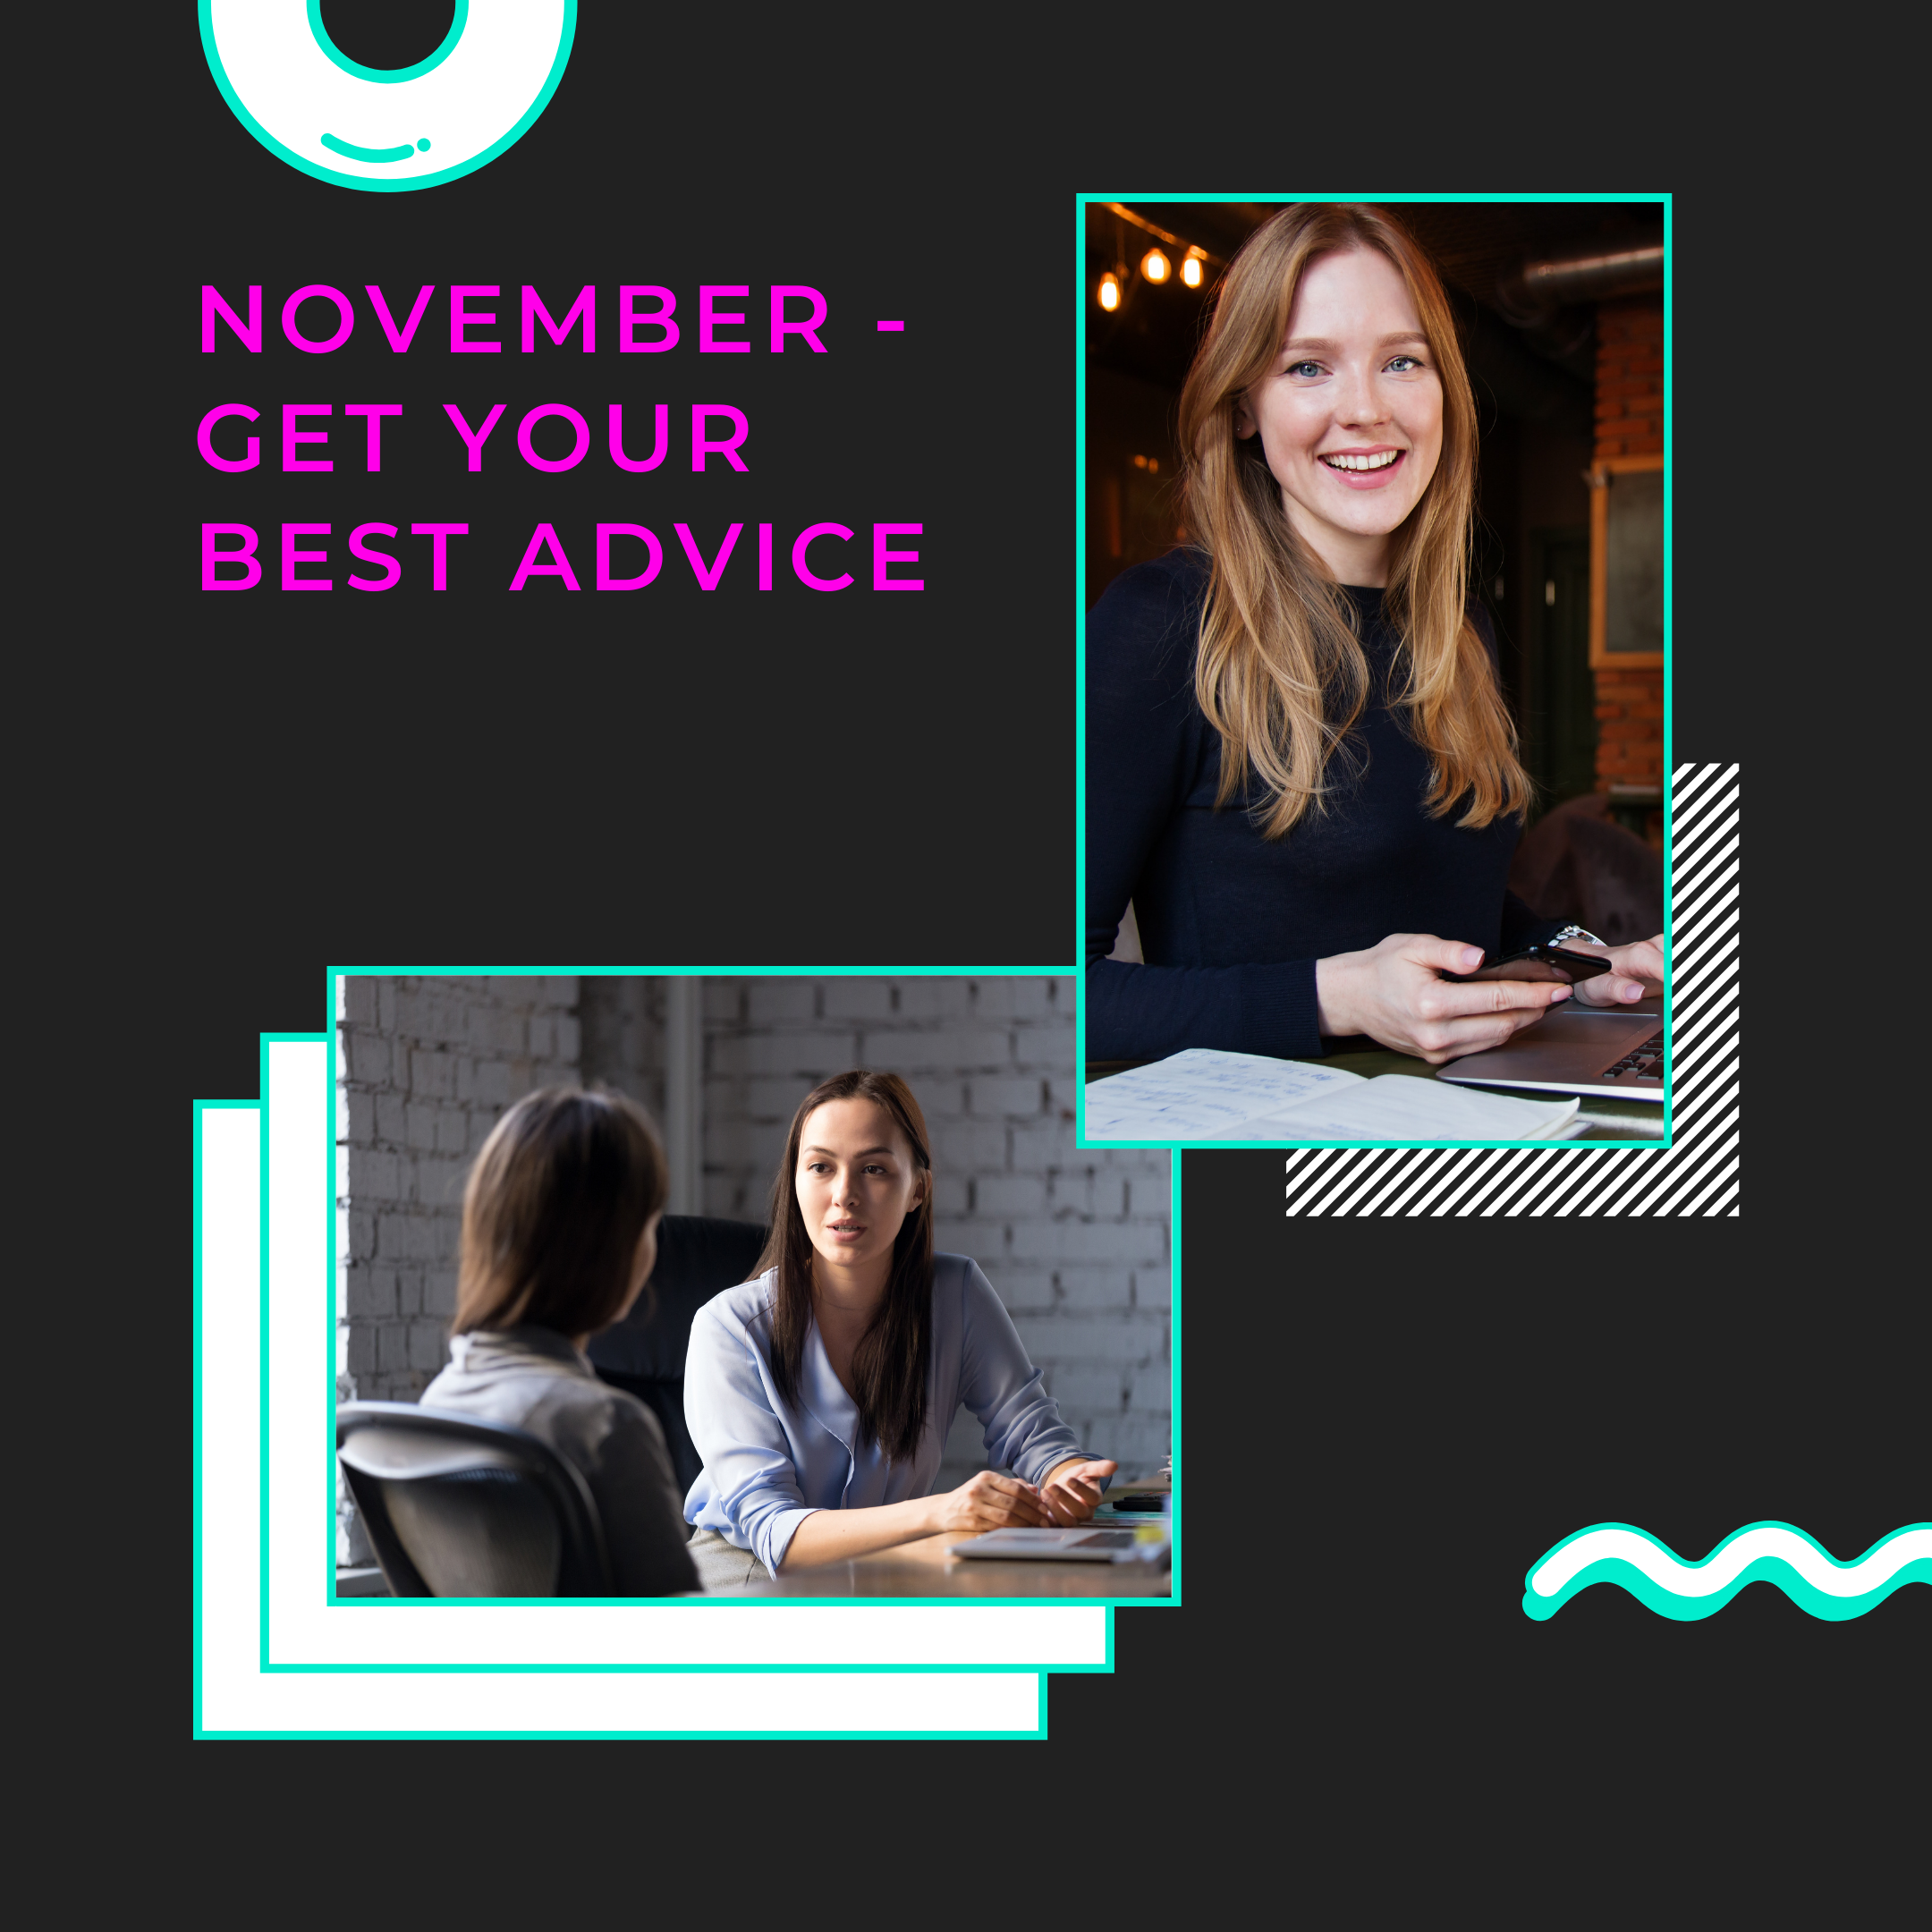 Get your best advice in November